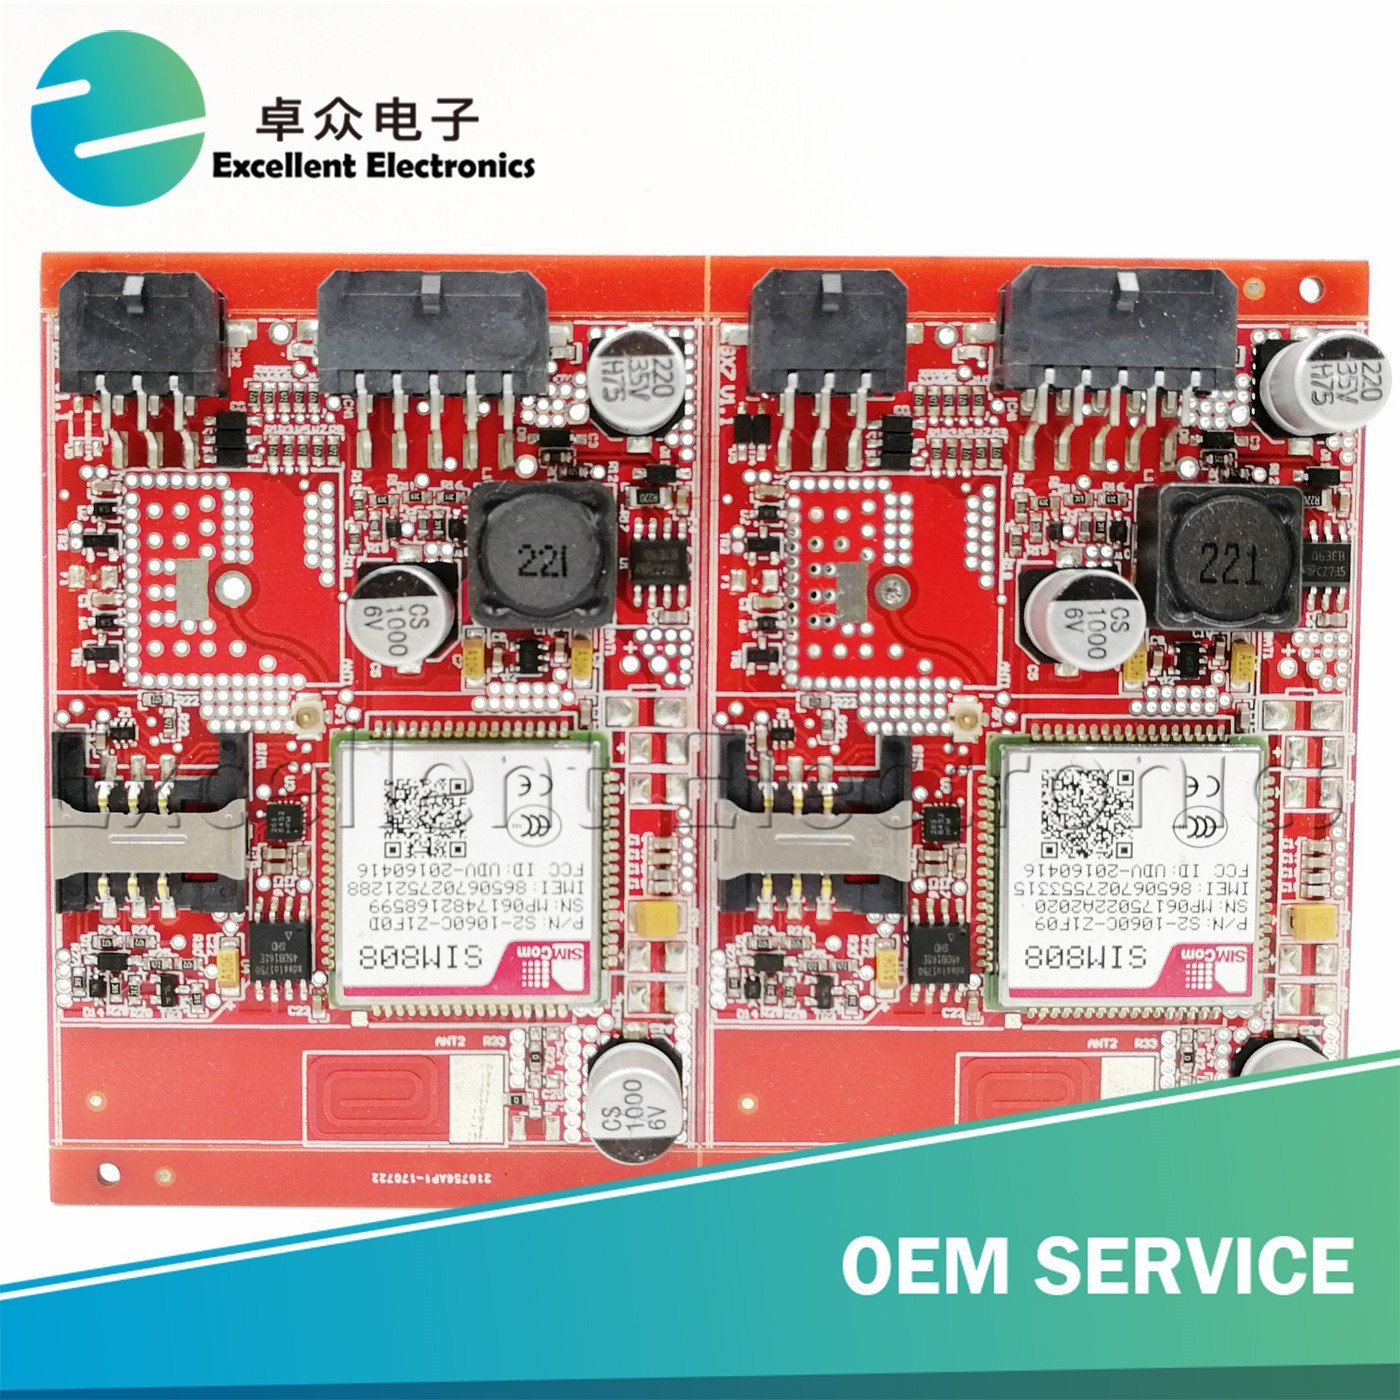 Wholesale Oem Pcba Buy Reliable From Wholesalers Smt Pcb Assembly Odm Printed Circuit Board Service China Manufacturing Shenzhen One Stop